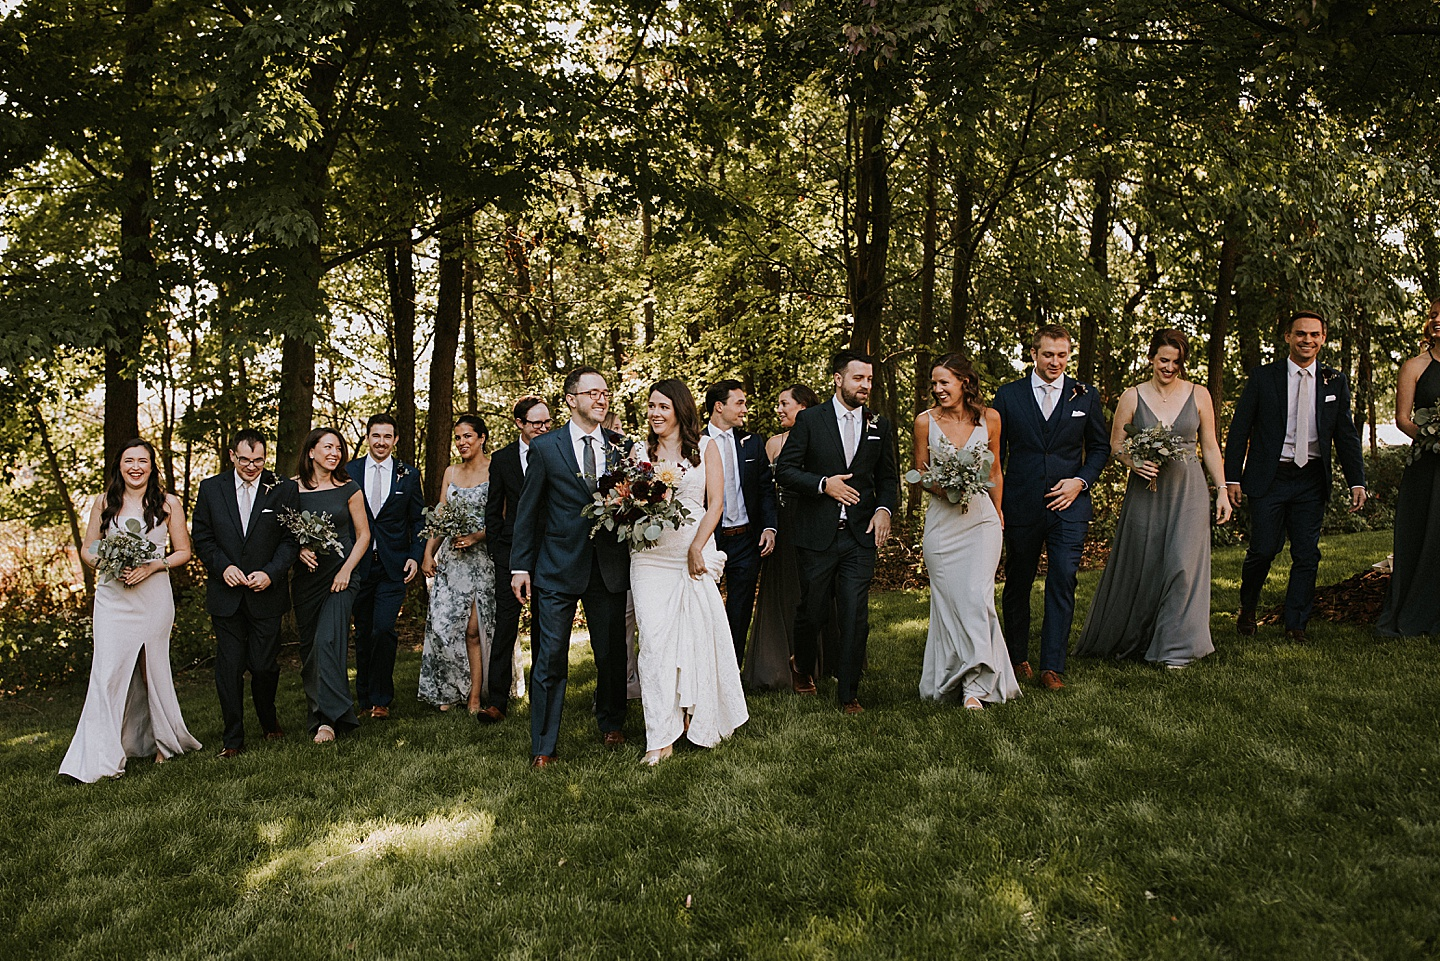 Wedding party in various colors of gray and blue